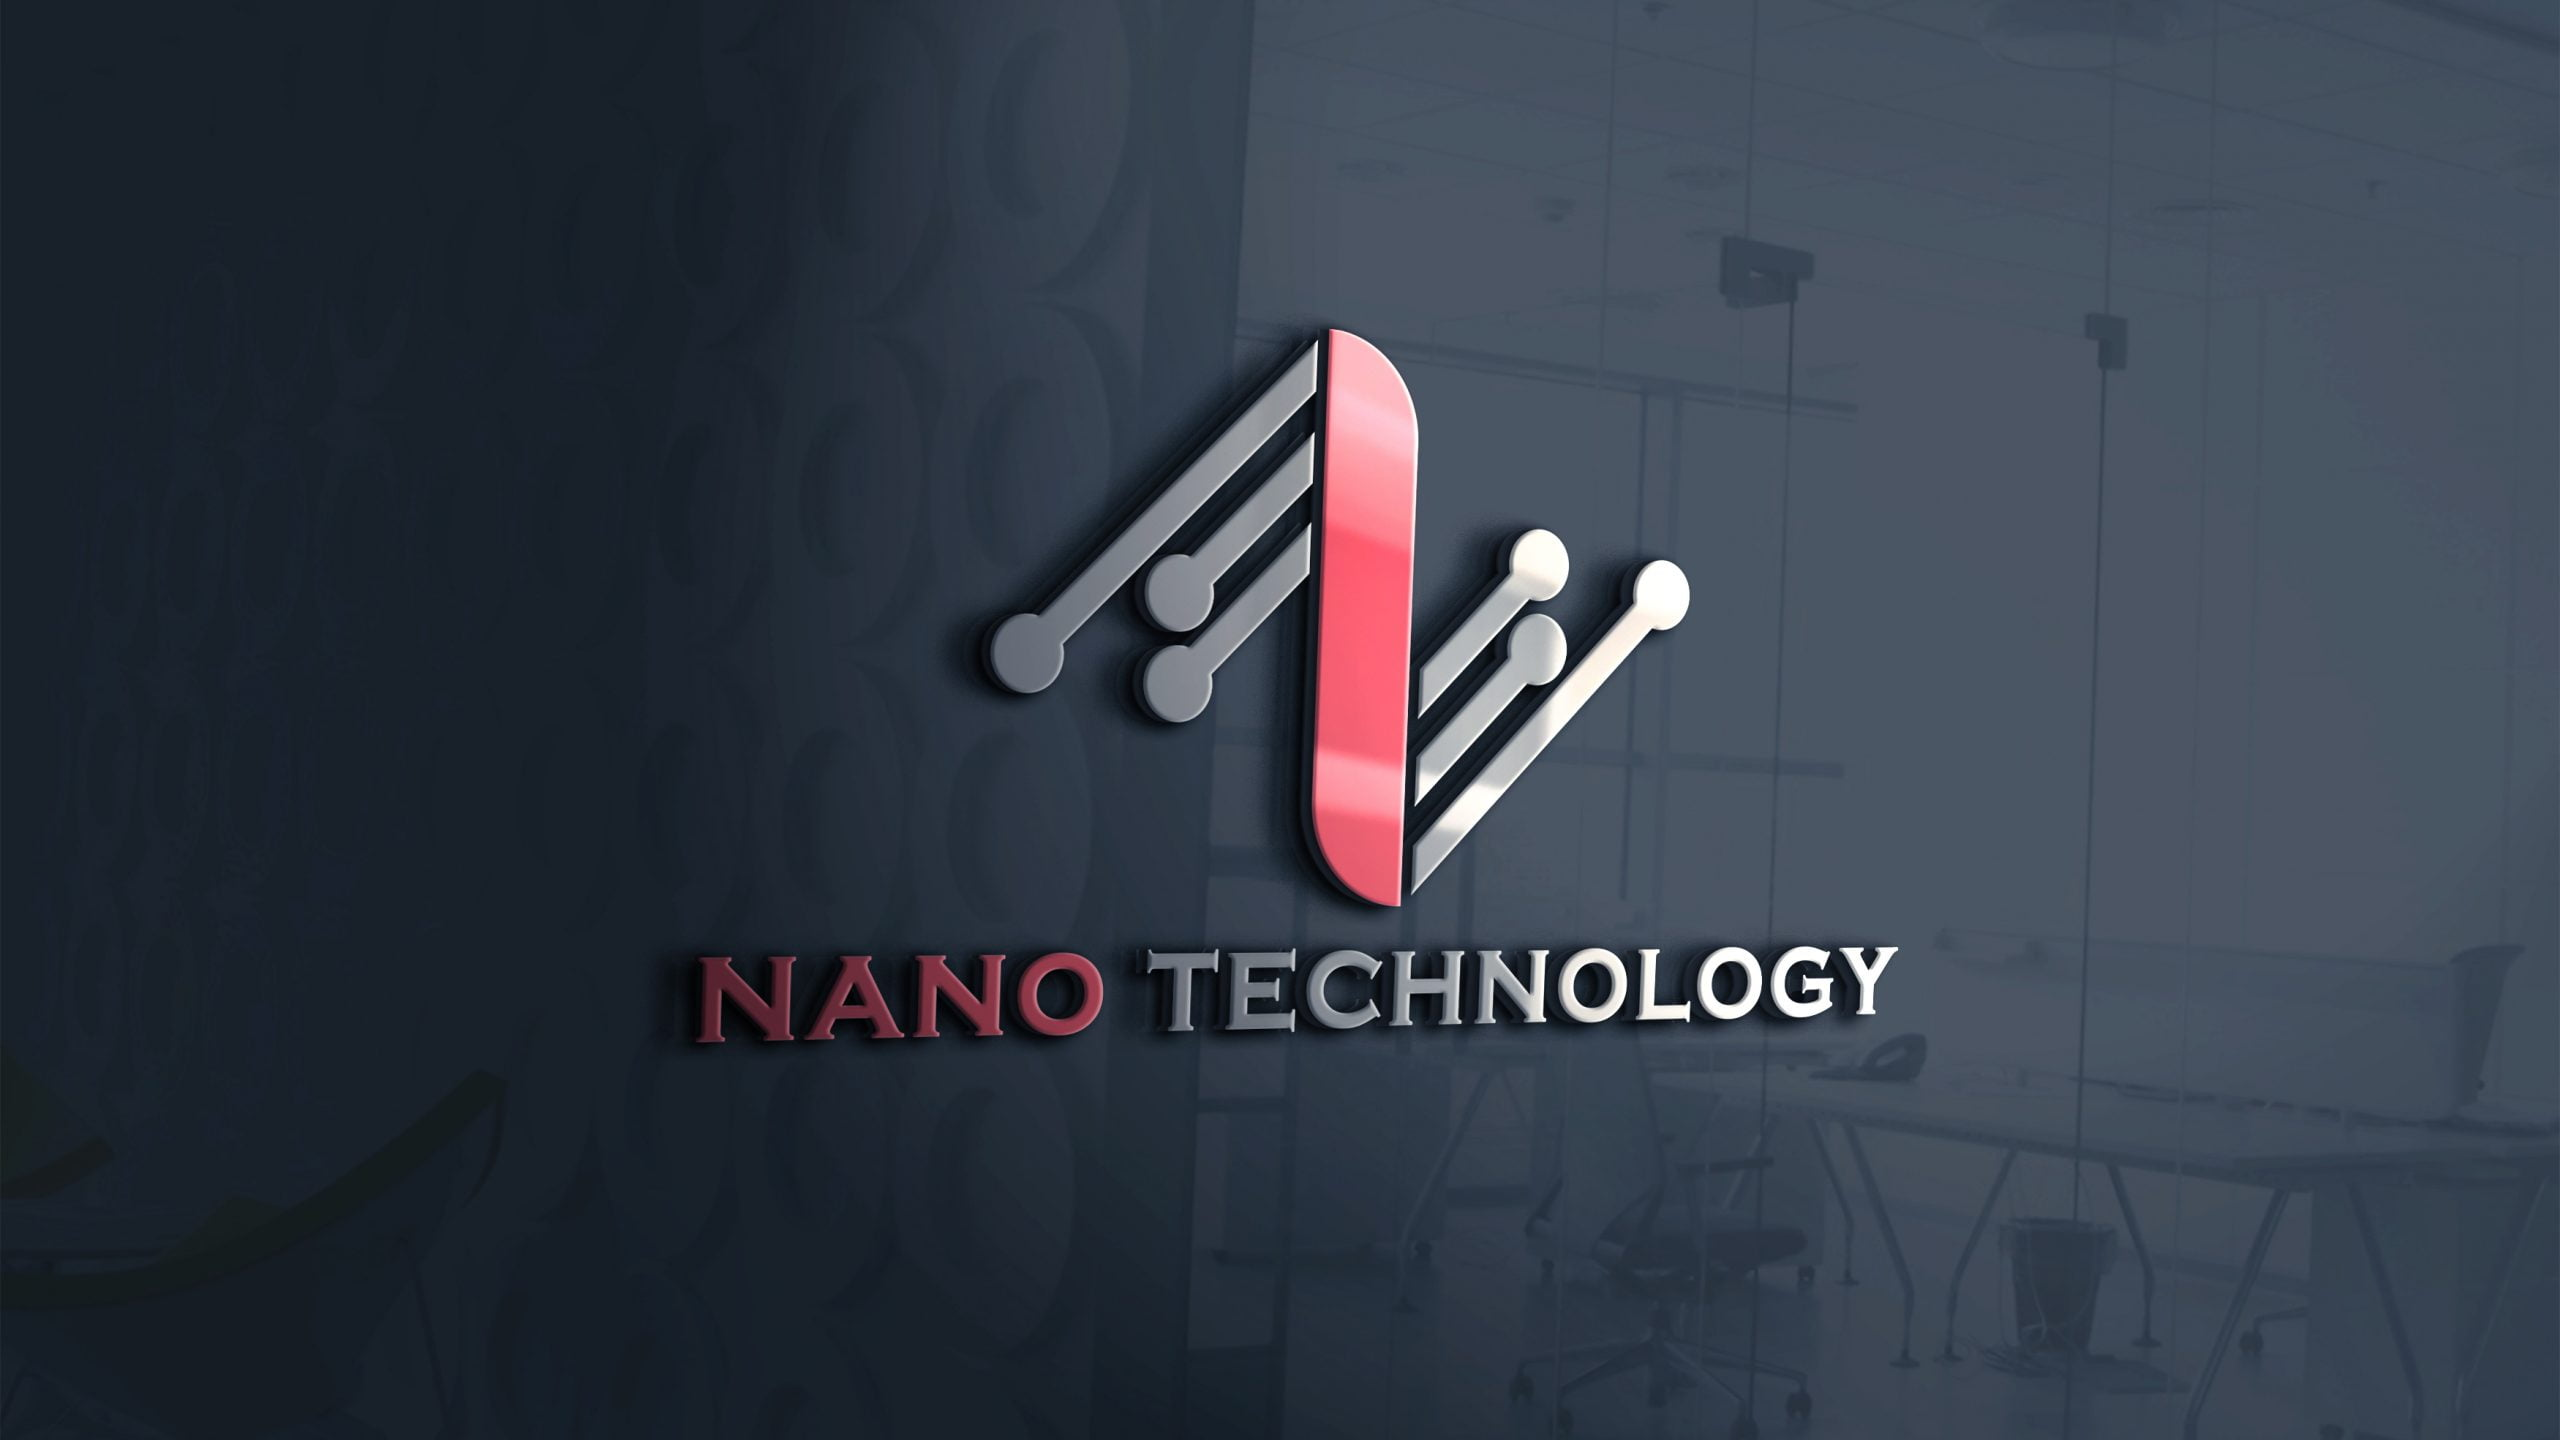 Abstract Technology Logo Design Free PSD Download